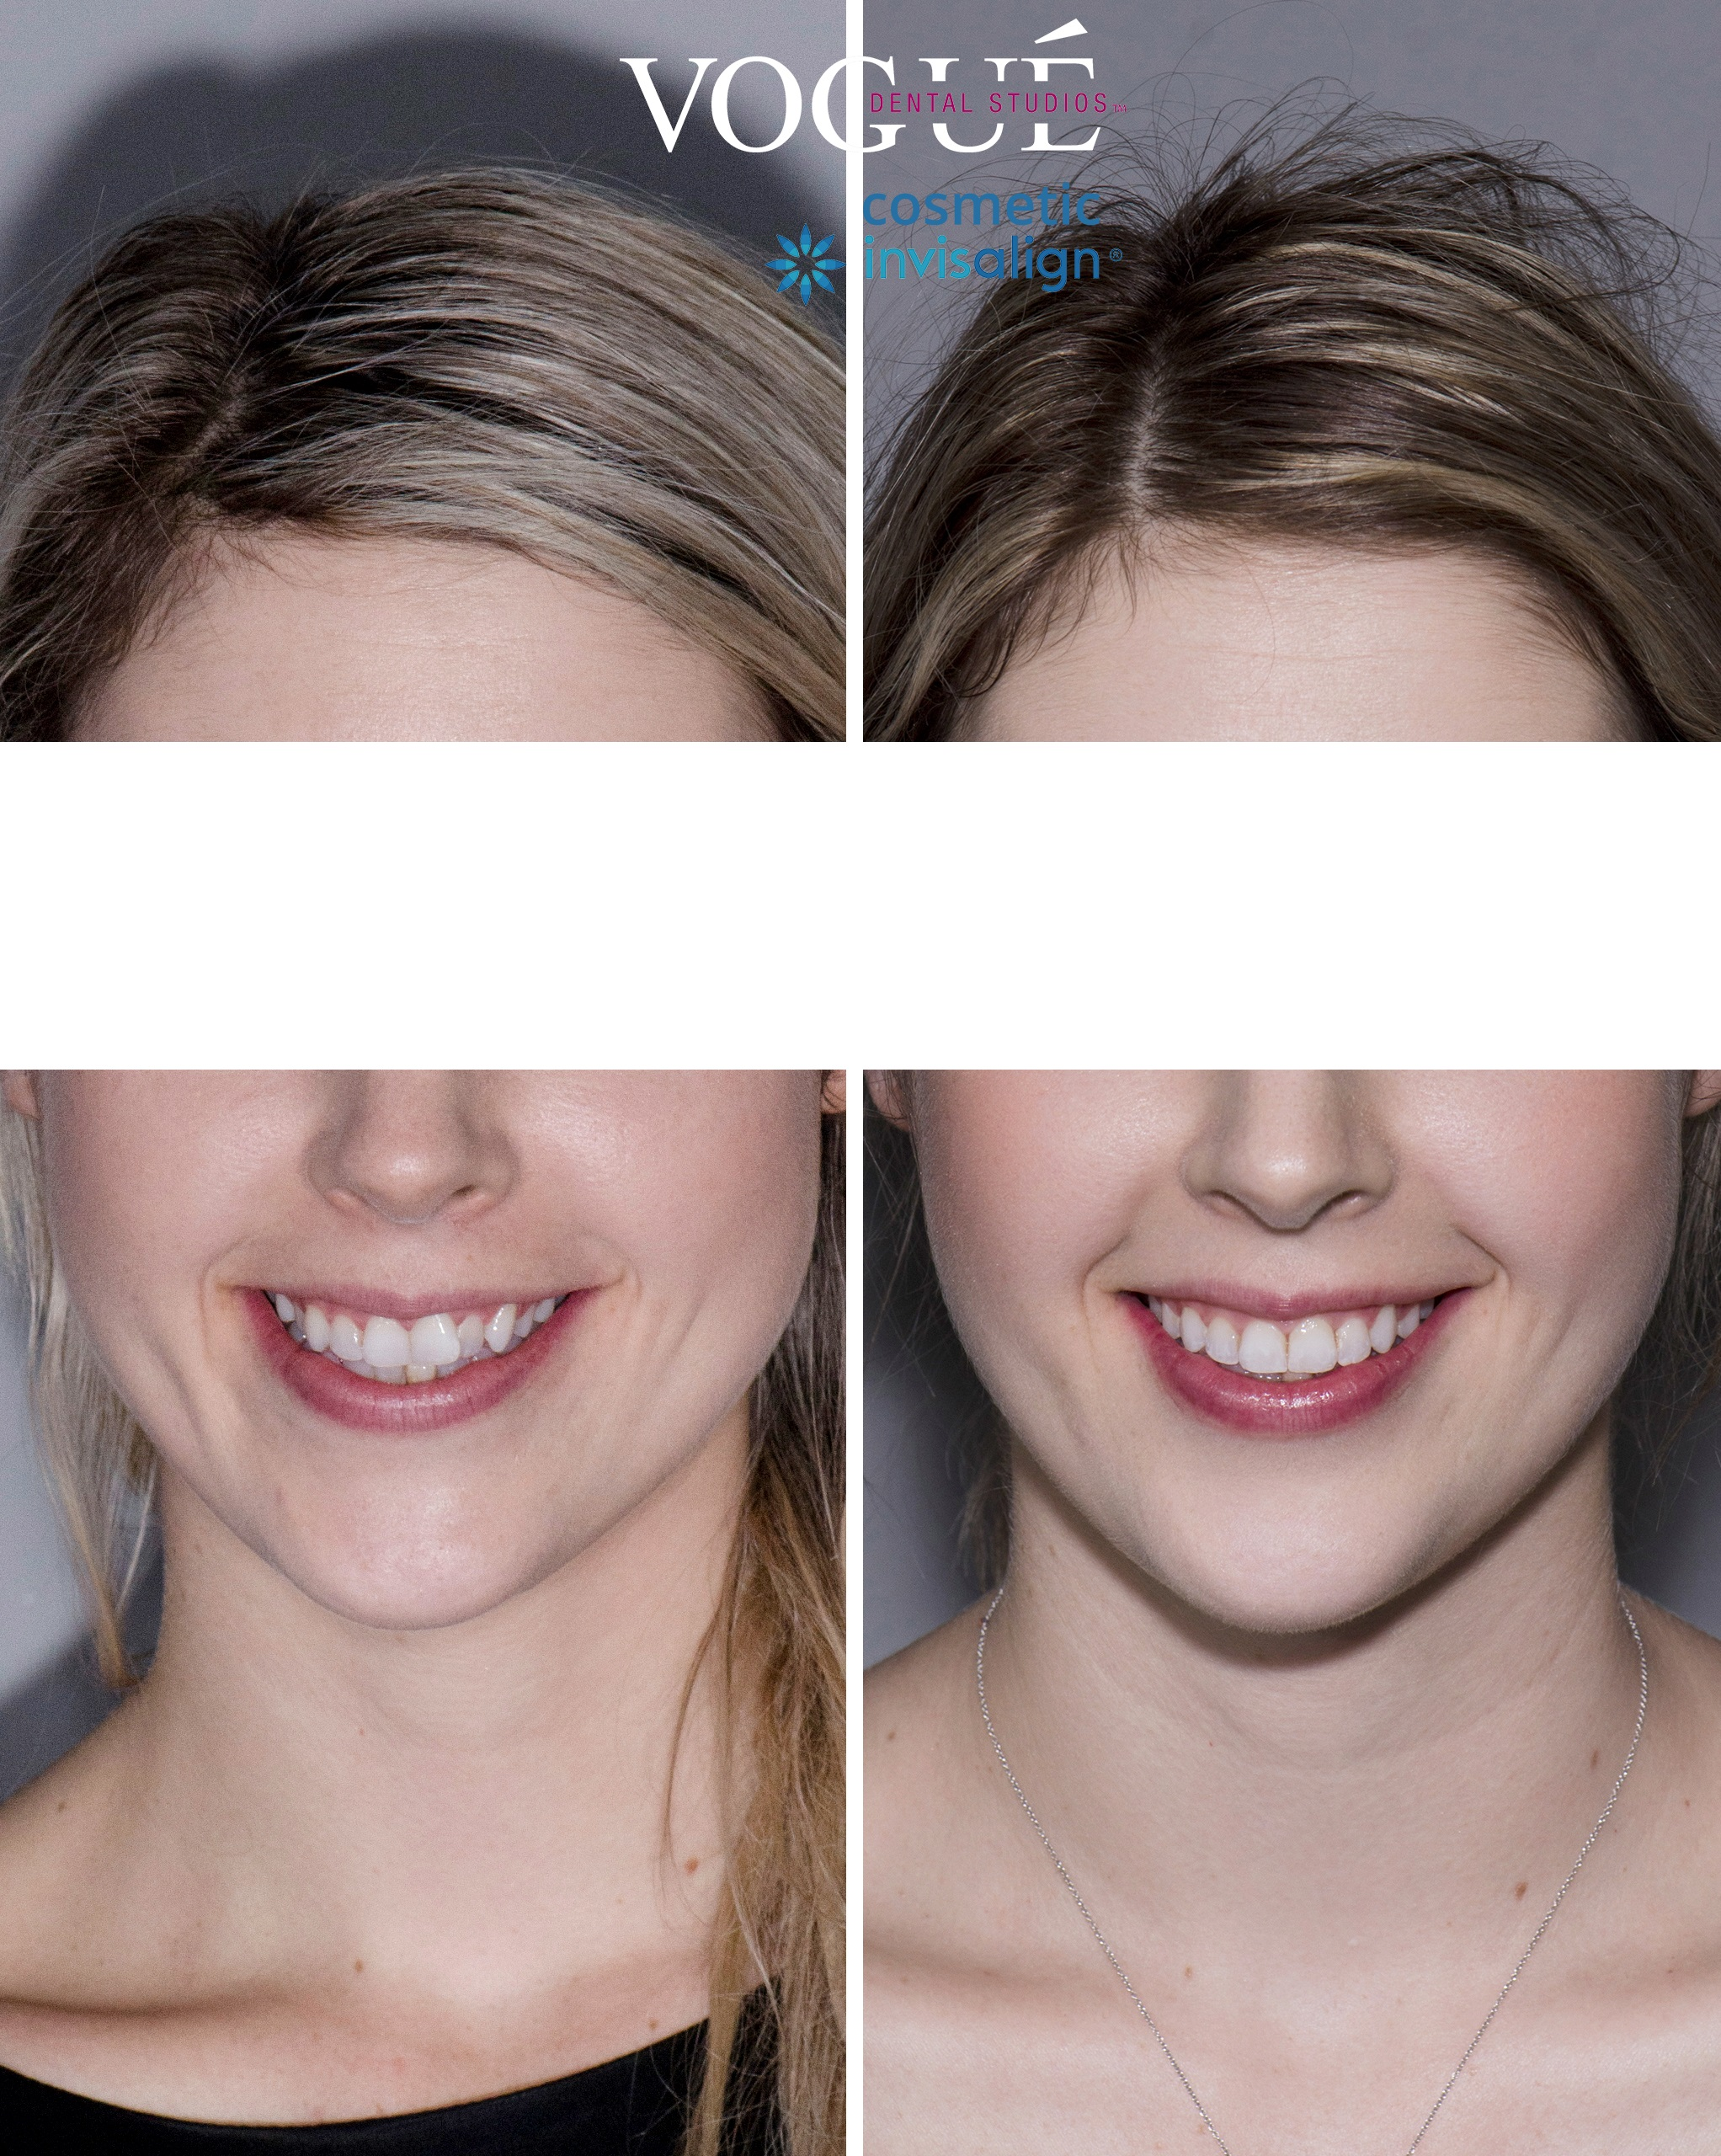 Before and after Invisalign Lite at Vogue Dental Studios - front face view.